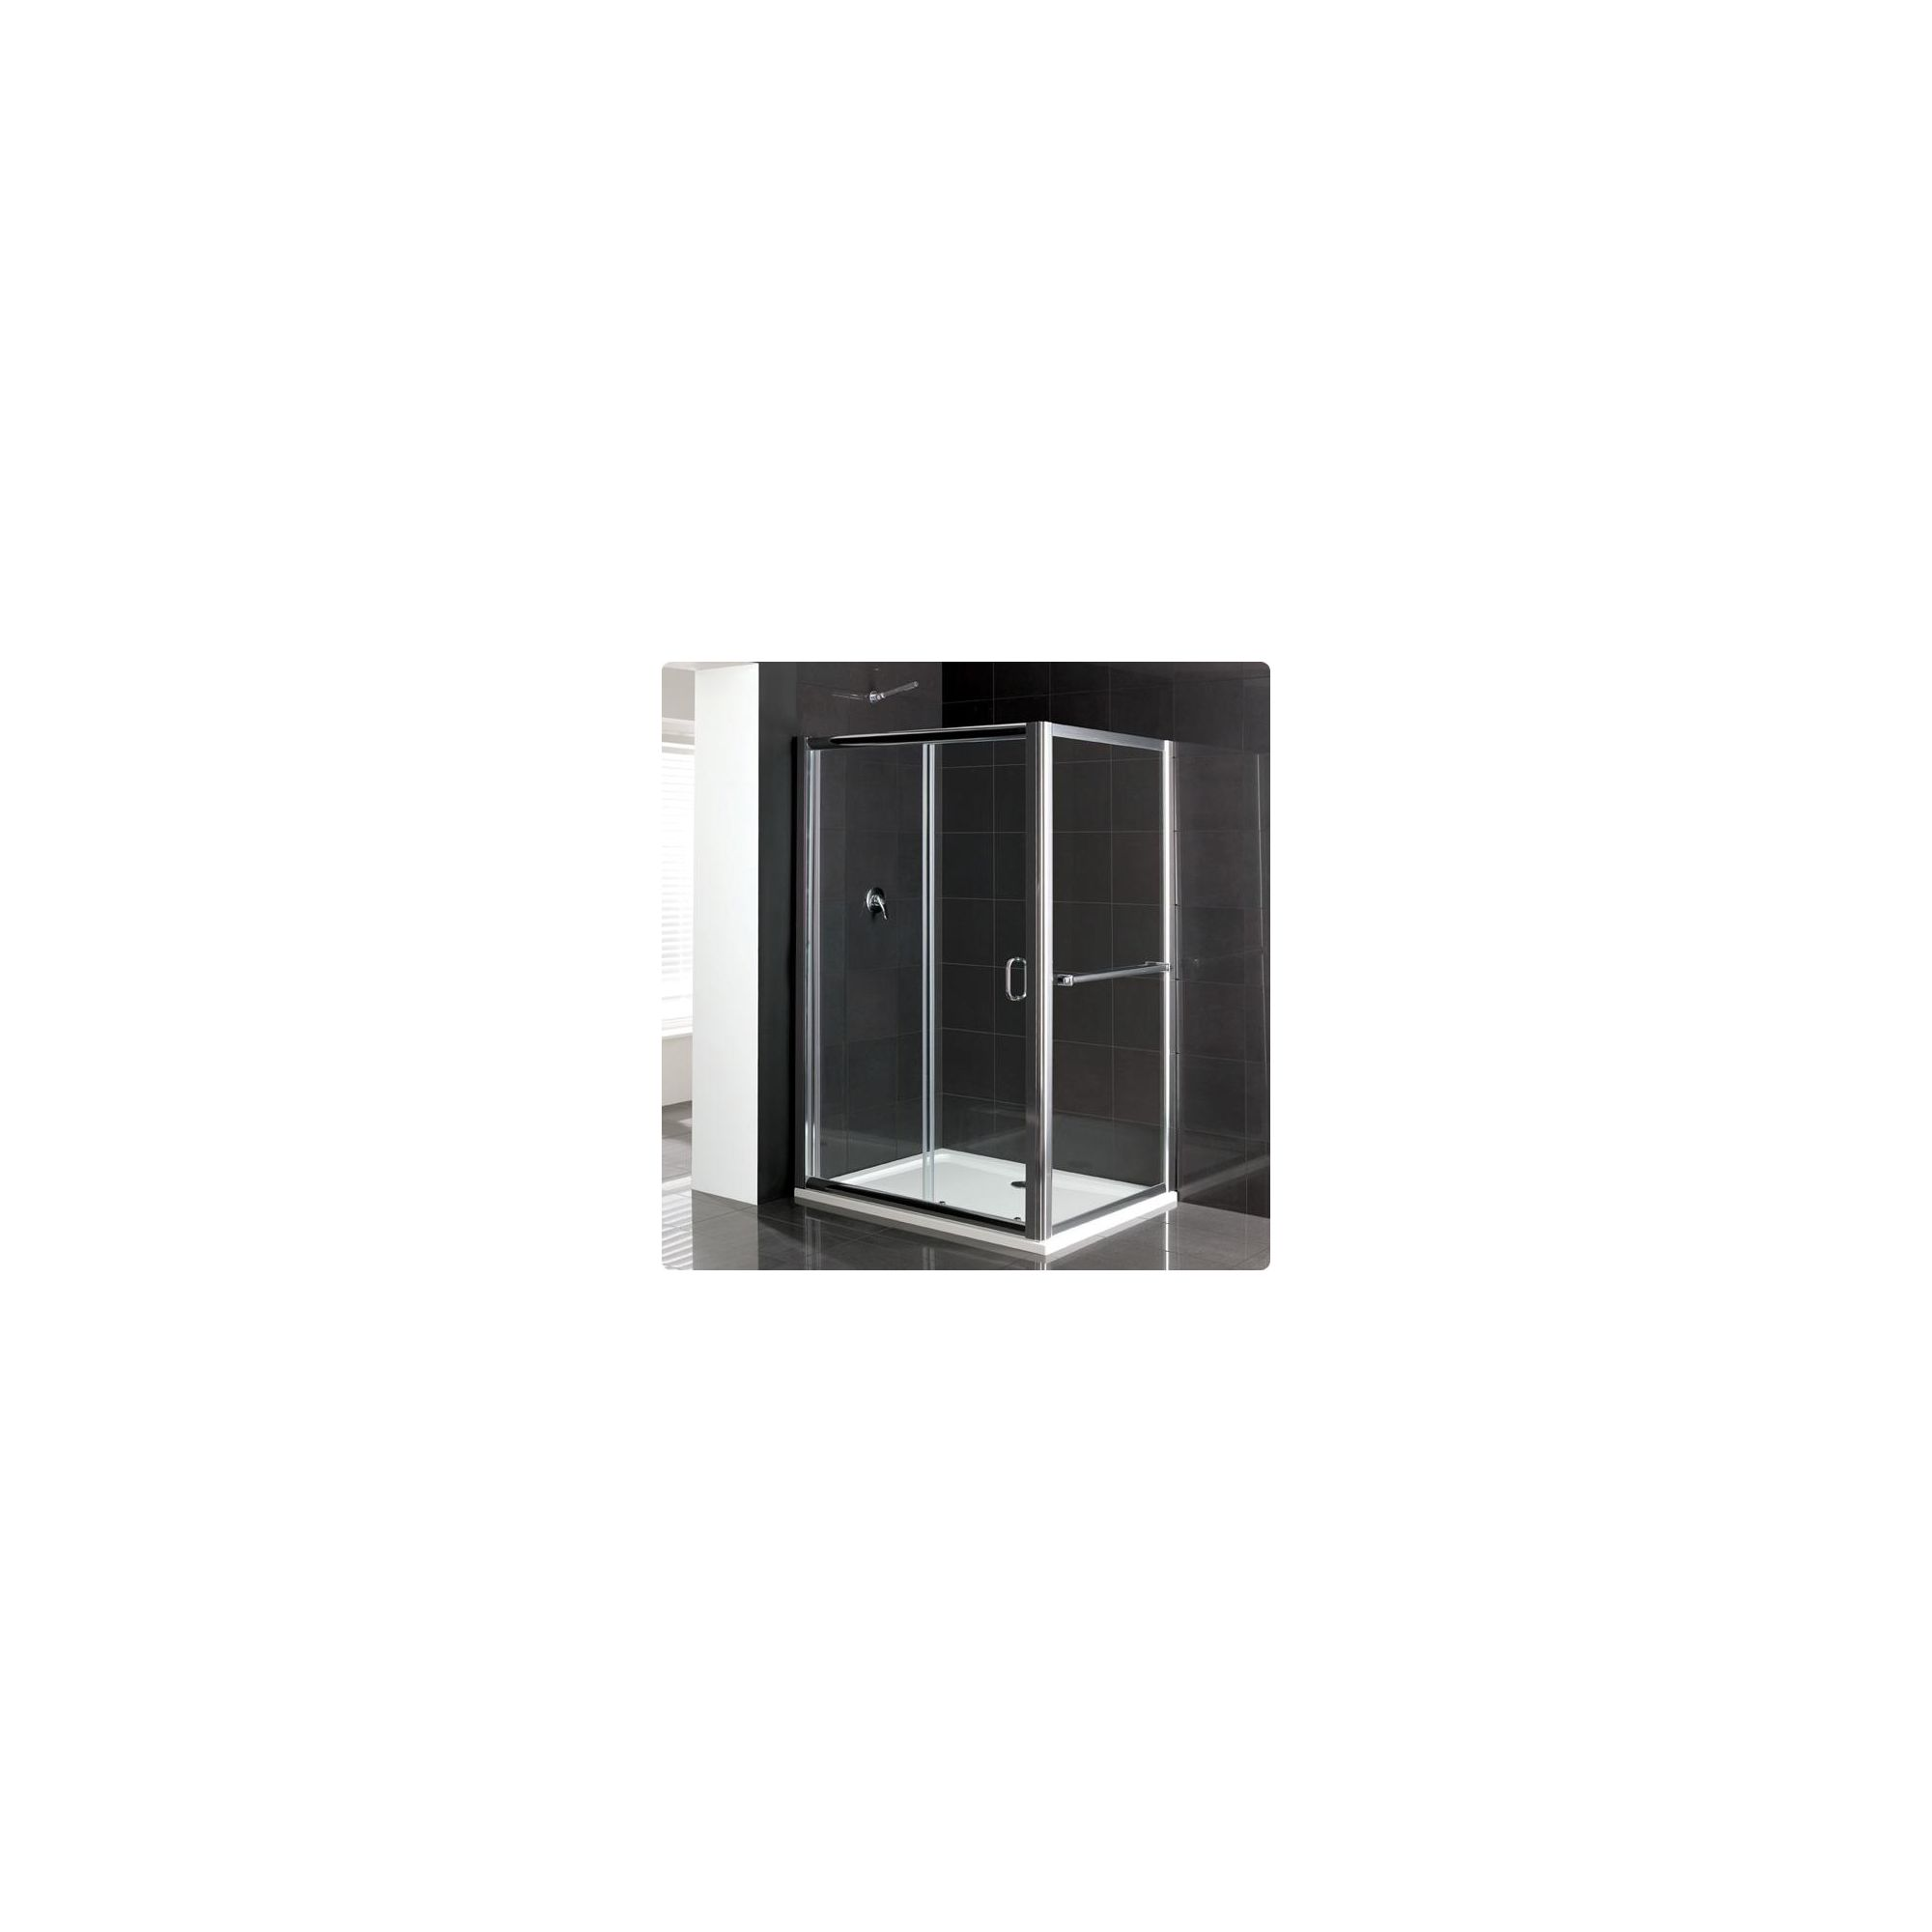 Duchy Elite Silver Sliding Door Shower Enclosure with Towel Rail, 1400mm x 760mm, Standard Tray, 6mm Glass at Tesco Direct